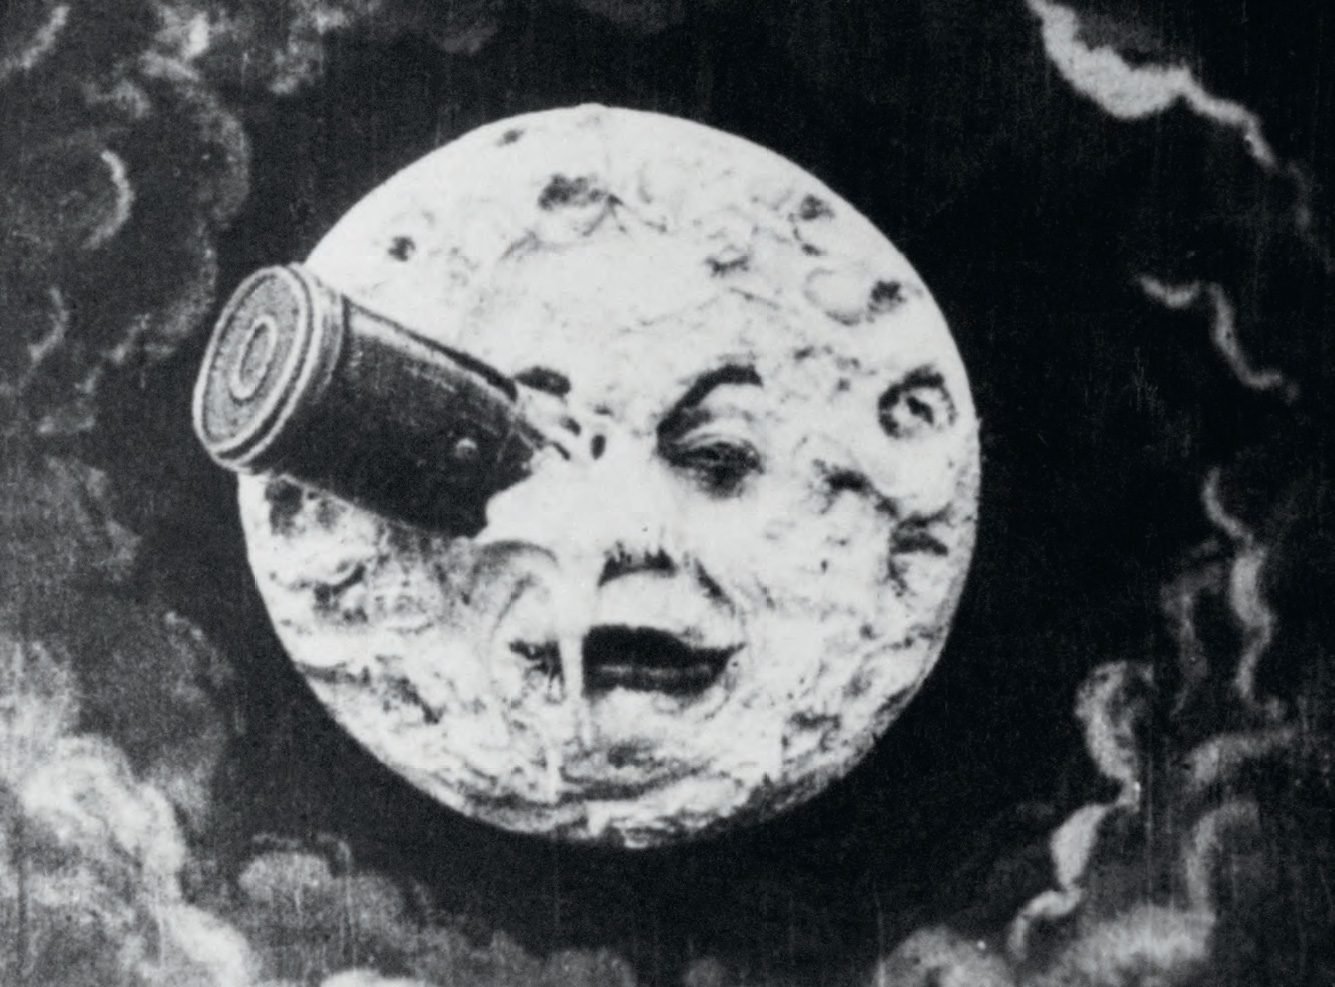 Film still from A Trip to the Moon (Le Voyage dans le lune) (1902) by Georges Méliès, as reproduced in Universe